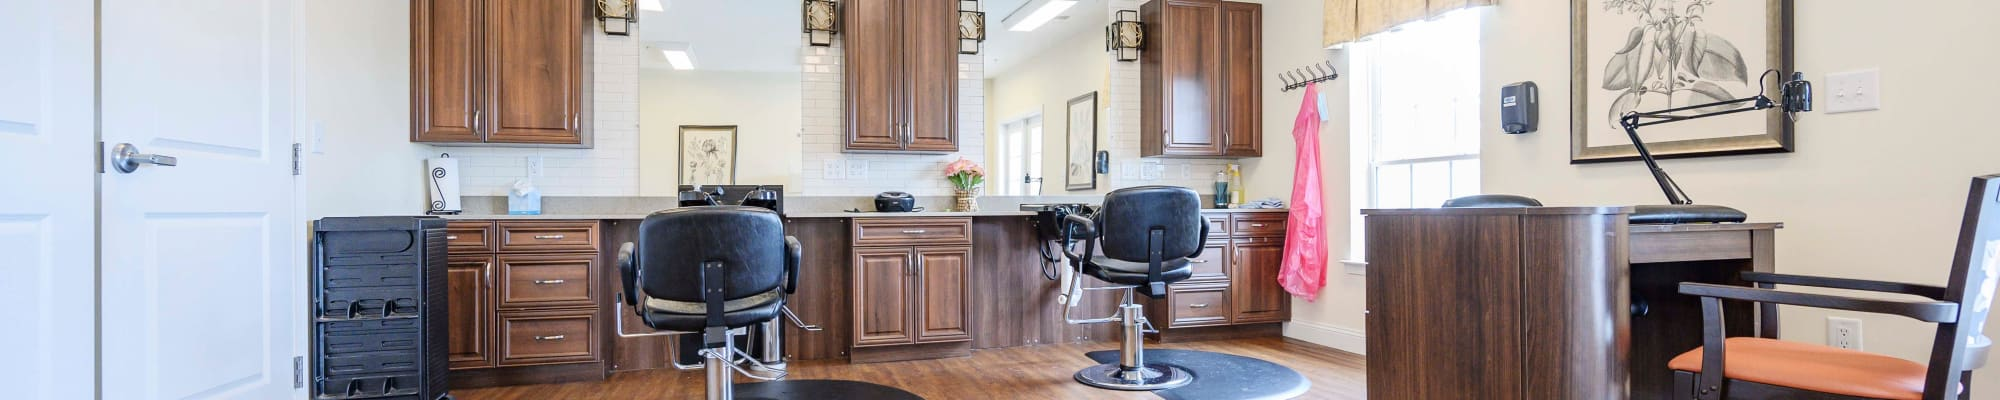 Services & Amenities at Harmony at Victory Station in Murfreesboro, Tennessee